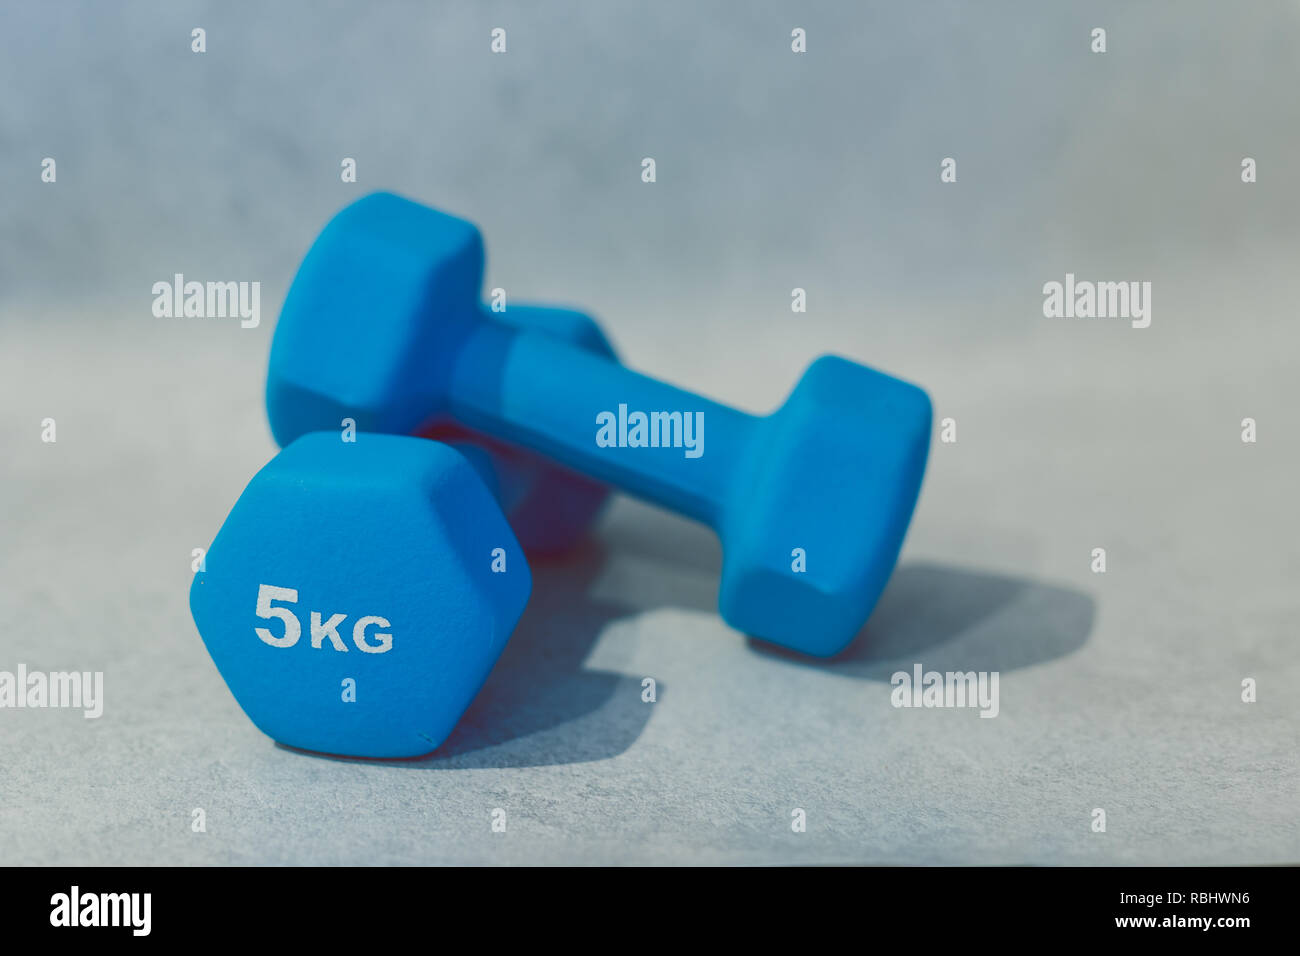 health and fitness resolutions, heavy dumbbells on concrete surface shot at shalow depth of field - Stock Image